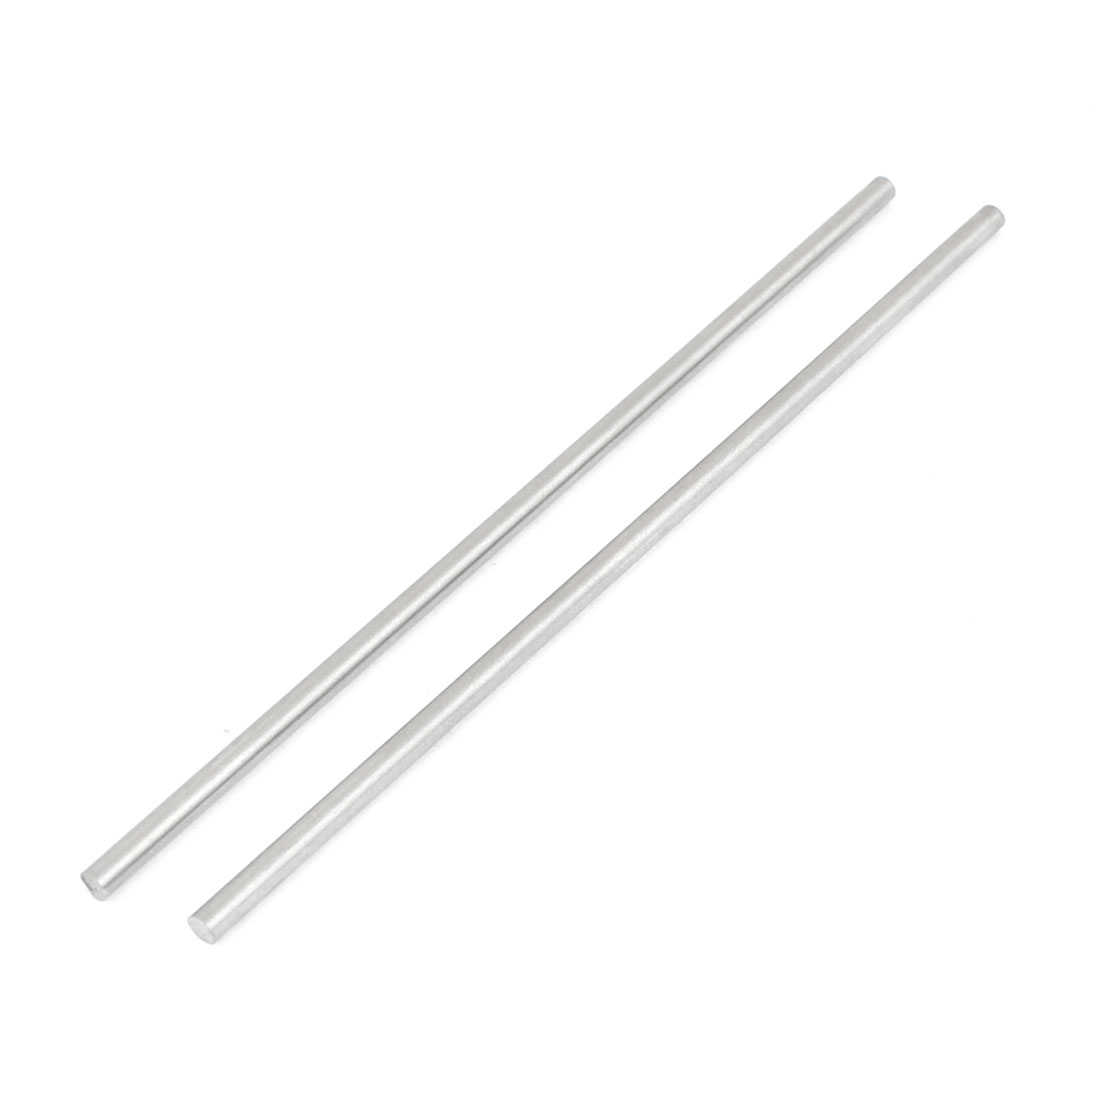 Unique Bargains 2 Pcs HSS High Speed Steel Round Turning Lathe Bars 2.5mm x 100mm